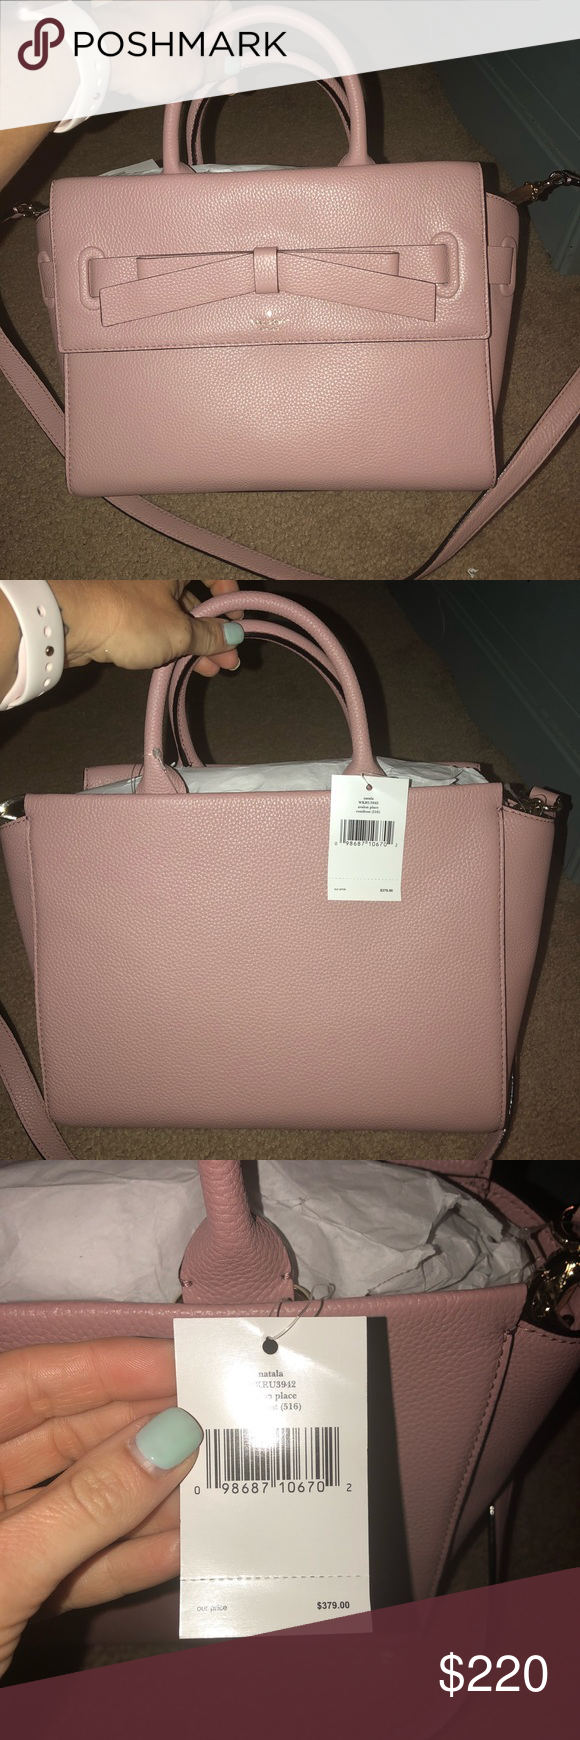 fb4263fb7e3d Kate Spade Natala Avalon Place Brand new beautiful Kate Spade purse. The  color is rose frost. So pretty in person. kate spade Bags Totes